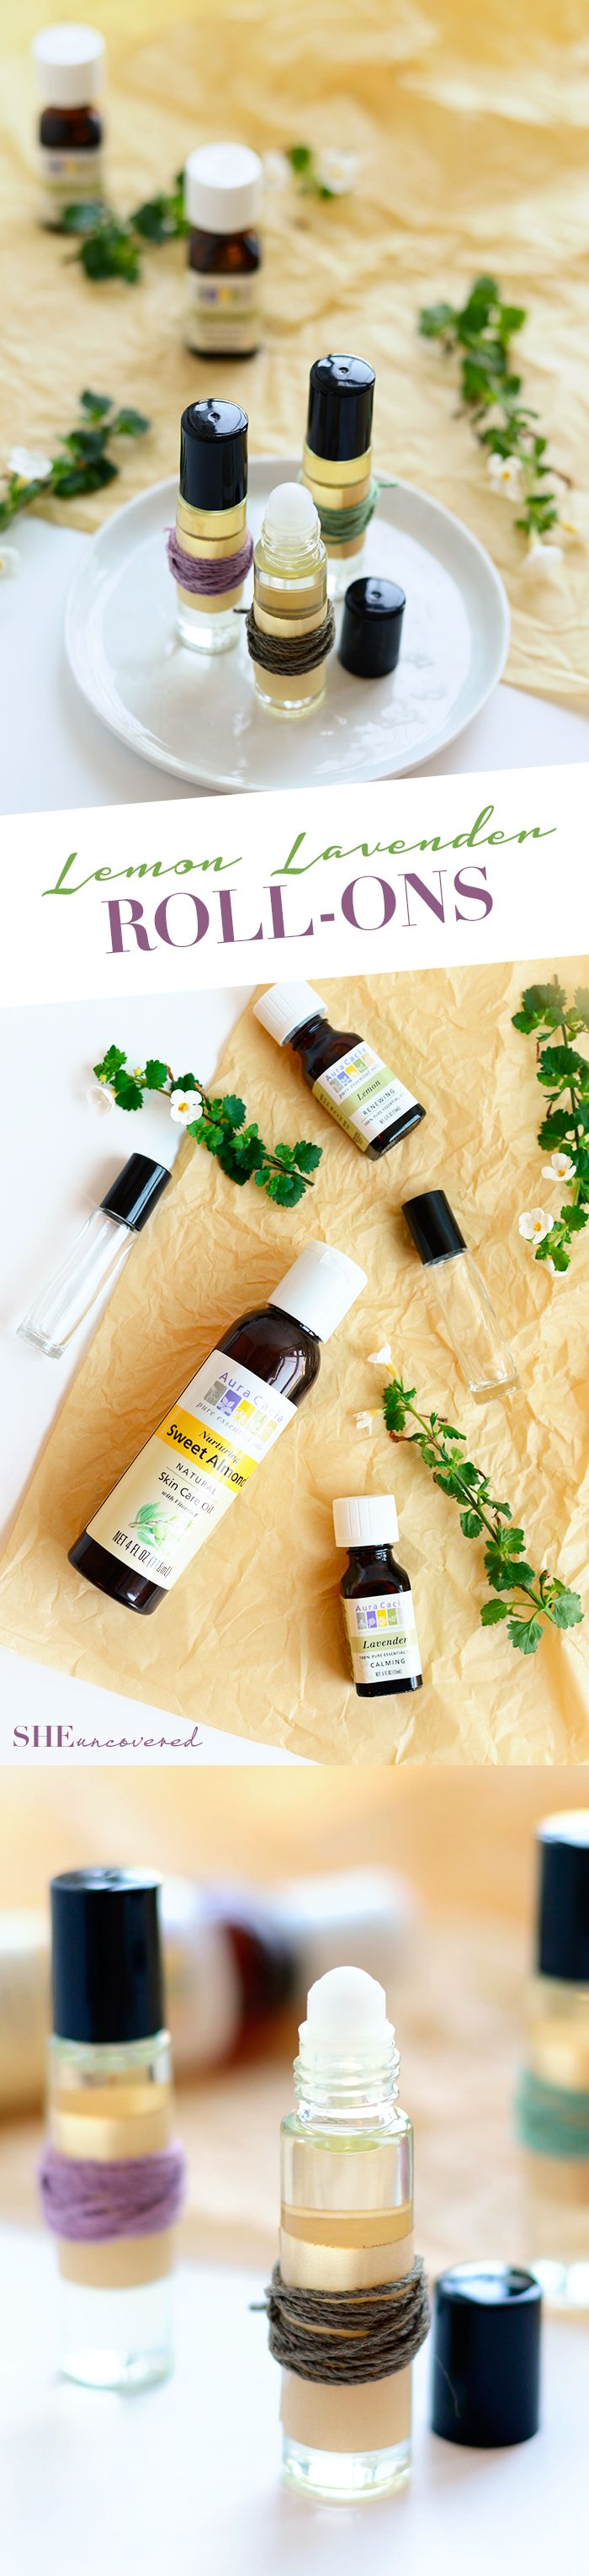 A super easy and all-natural body perfume roll-on recipe! Using sweet almond oil with a hint of lemon and lavender you can smell fresh all day long. They're a great thing to toss in your purse or gift to friends or hosts!